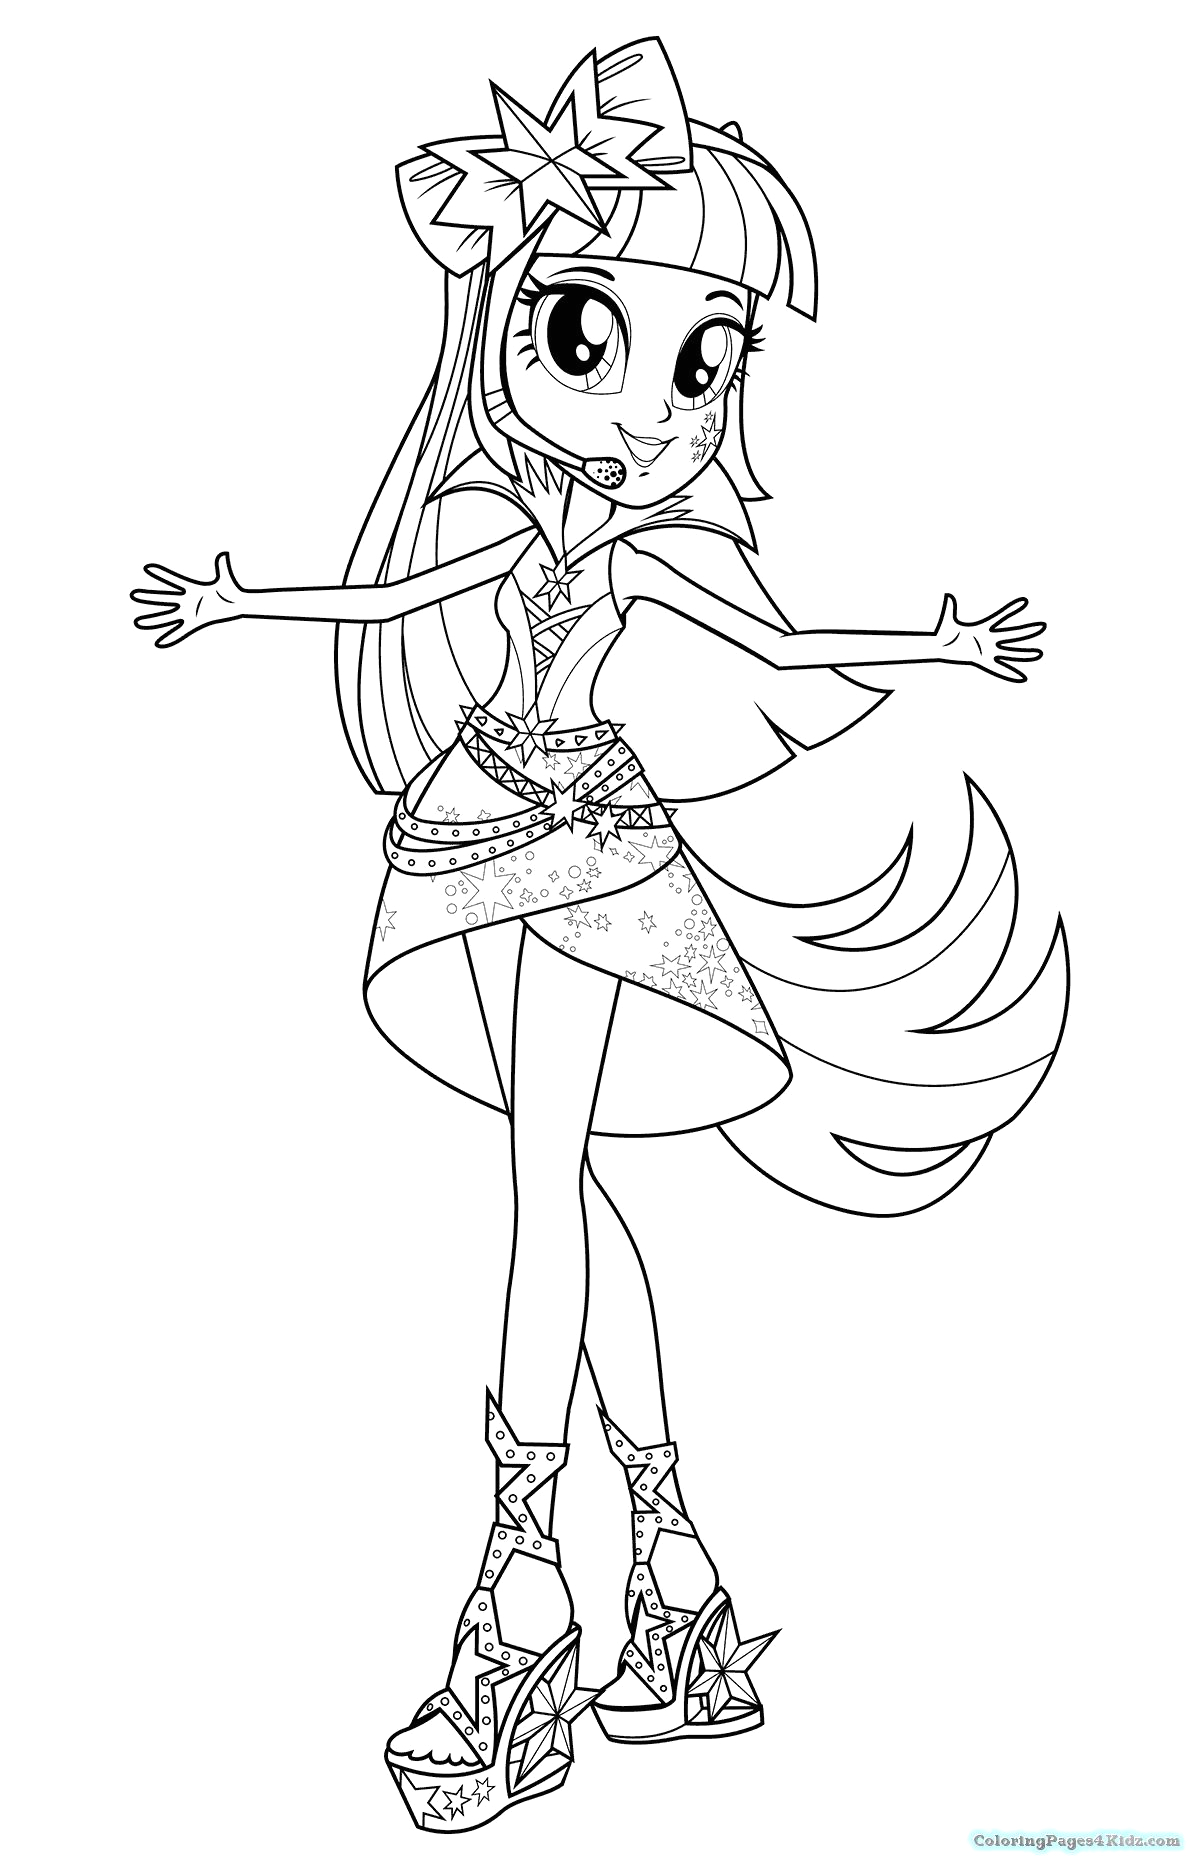 Coloring Pages Of My Little Pony Equestria Girls My Little Pony Equestria Girls Rainbow Rocks Coloring Pages